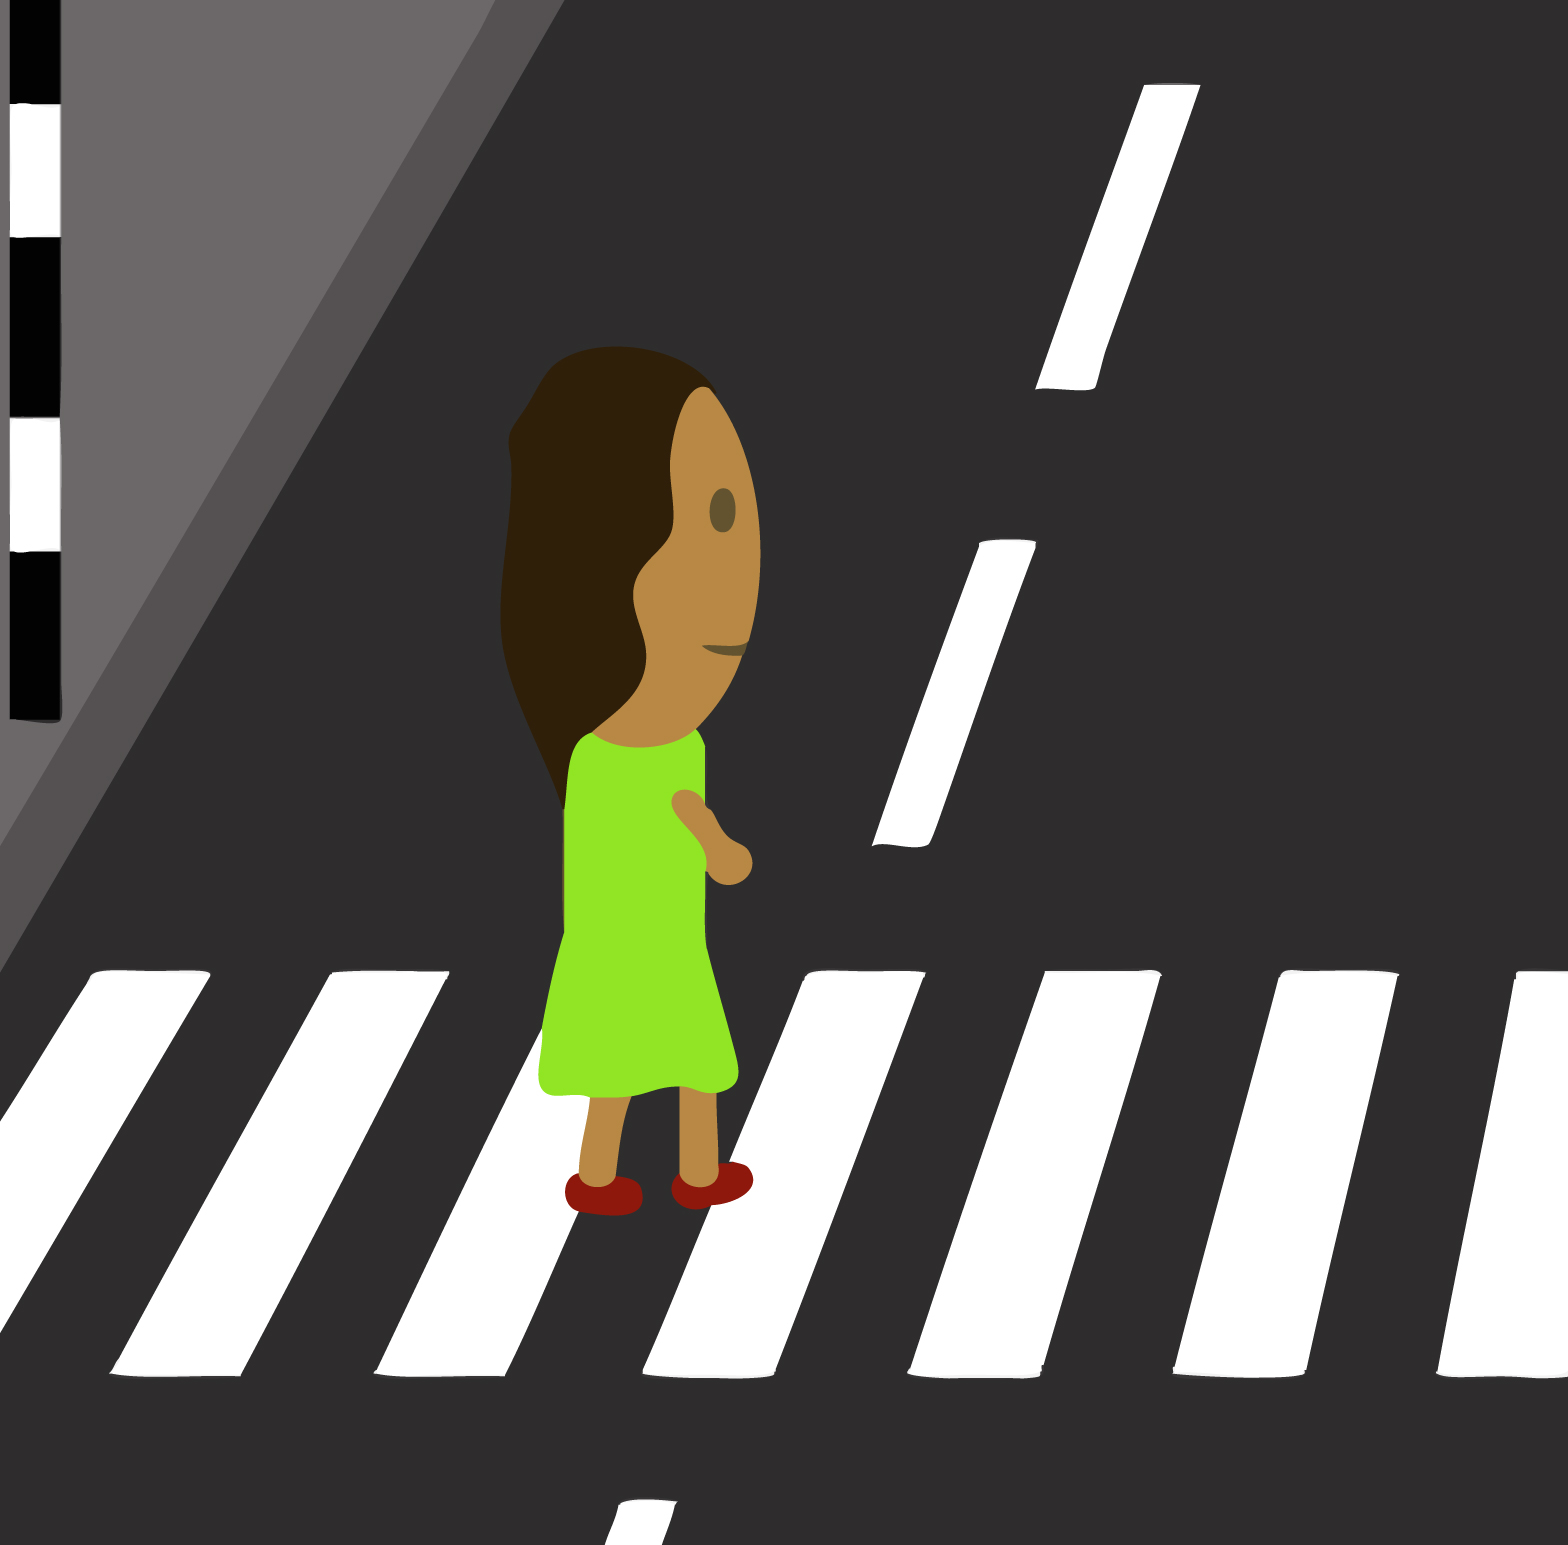 Road Crossing Clipart Zebra Crossing Illustration Free Early Years And Primary